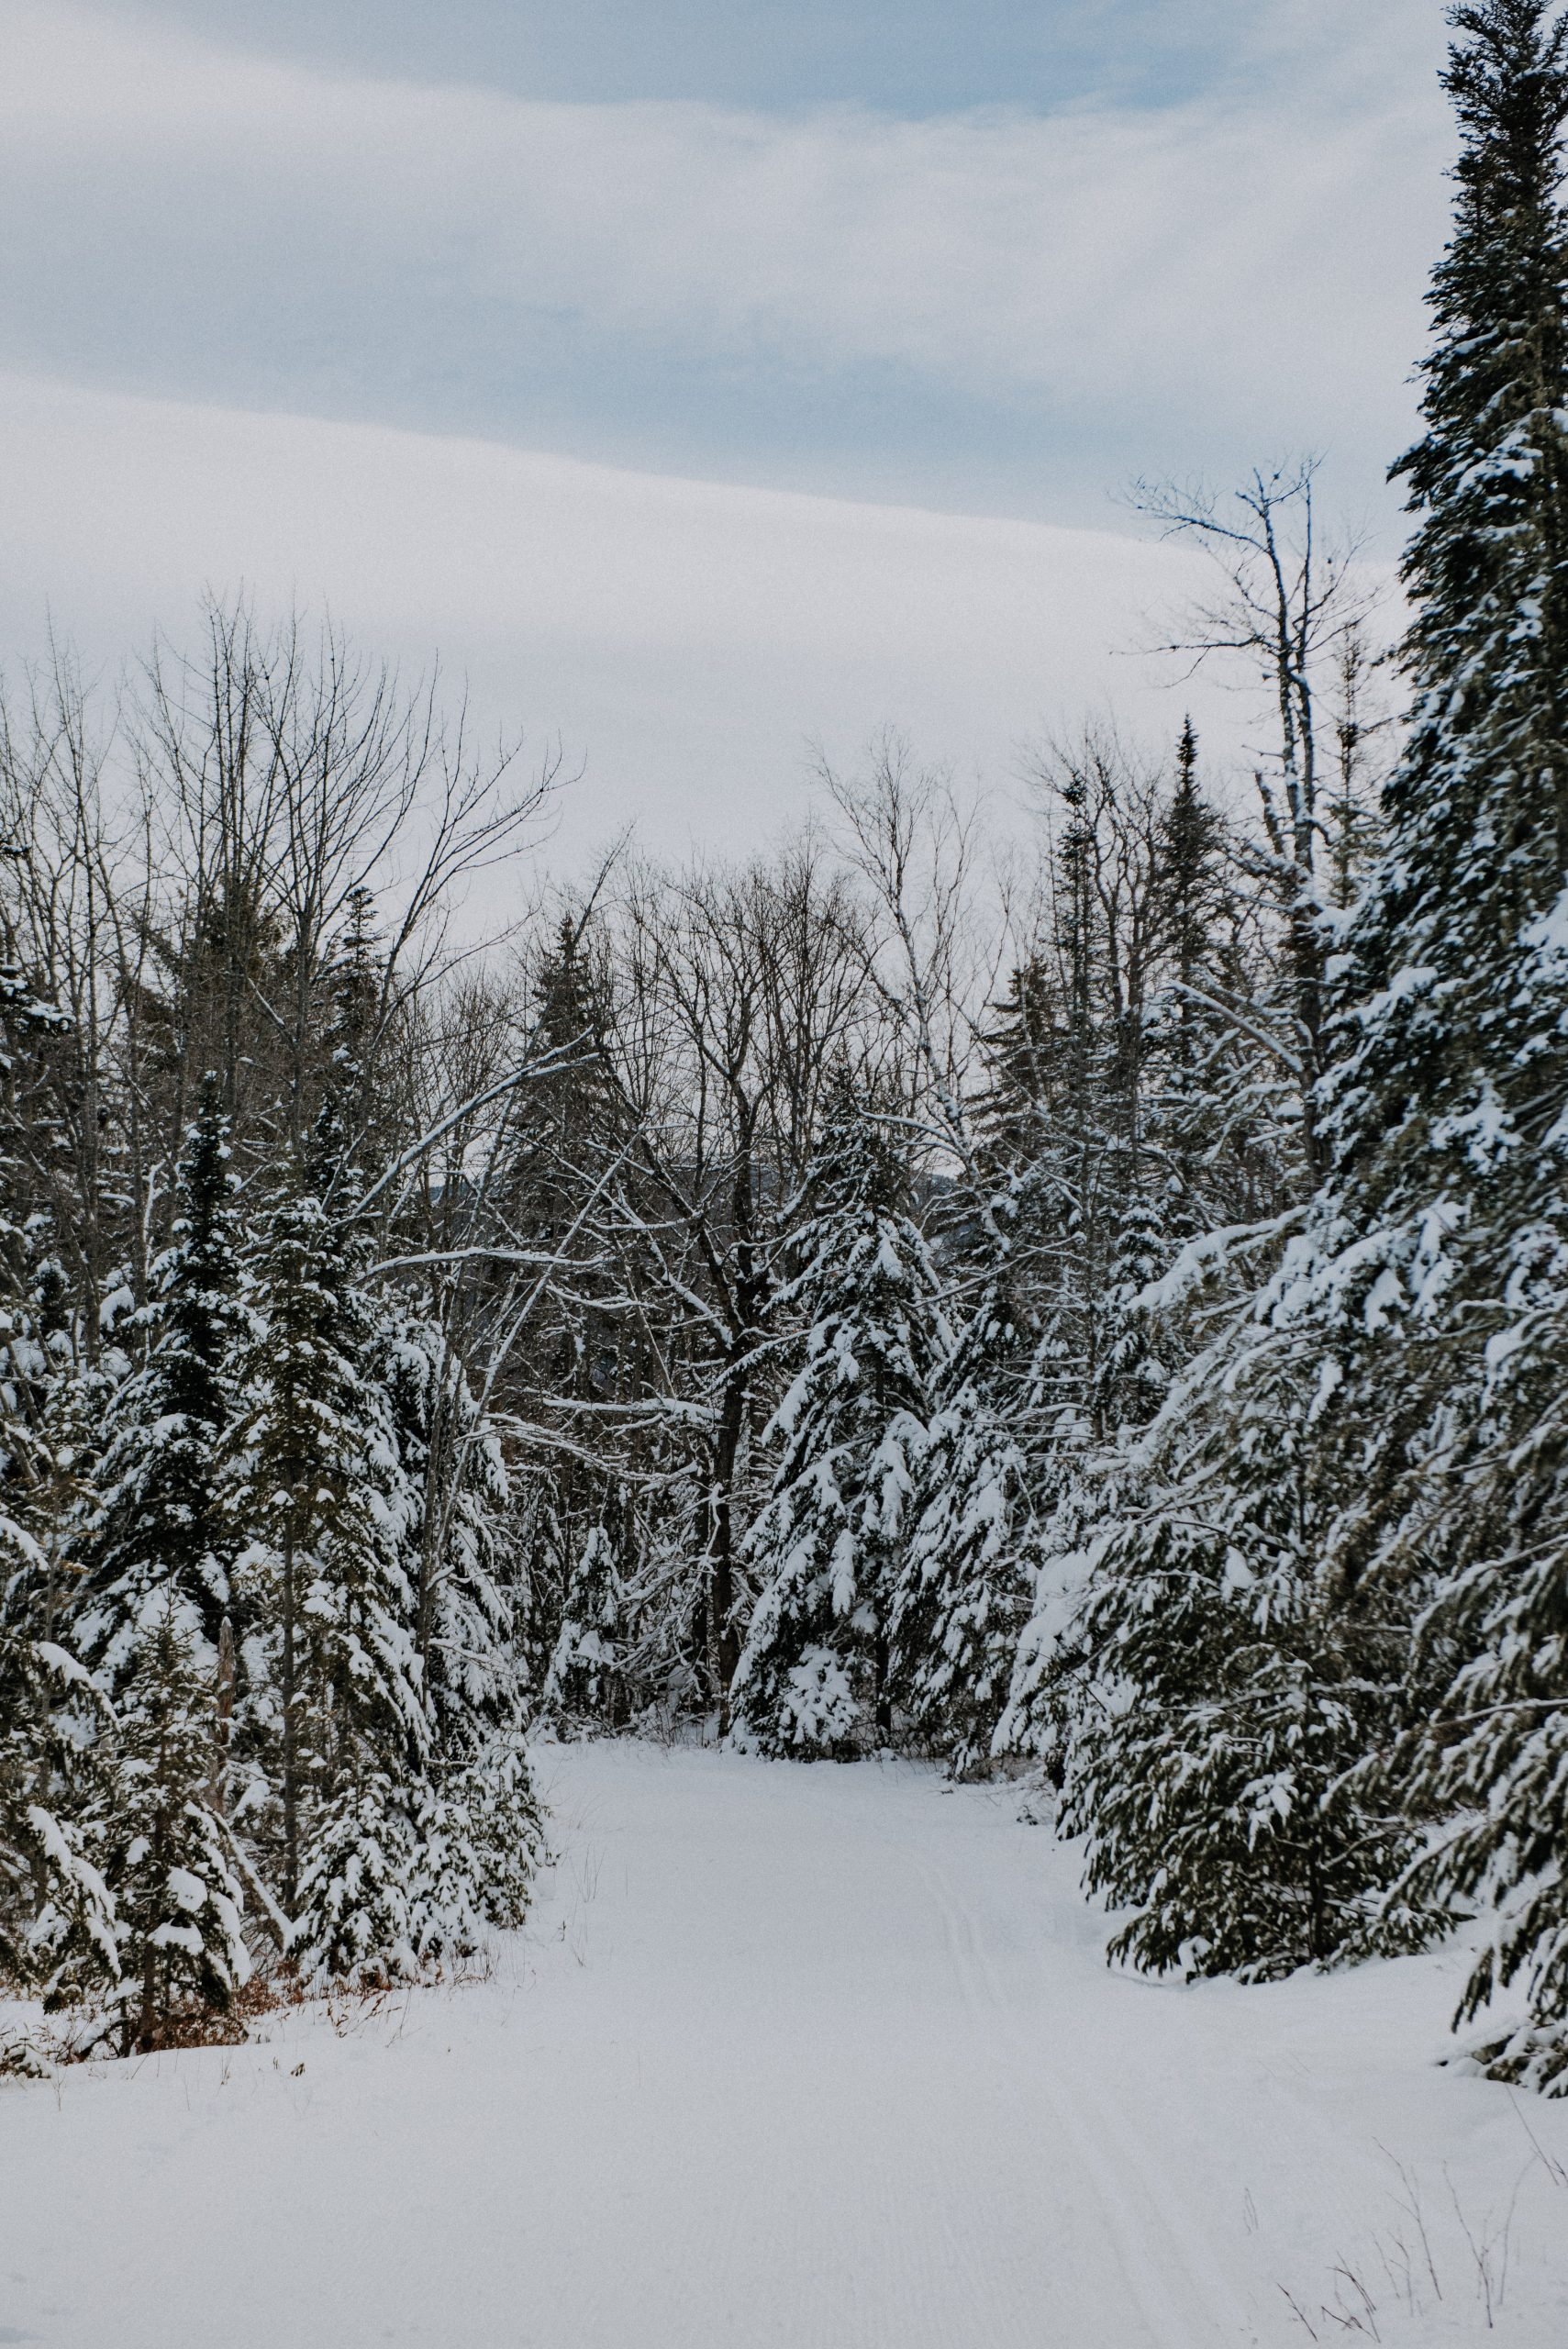 Snowshoeing at Sugarloaf Mountain in Maine